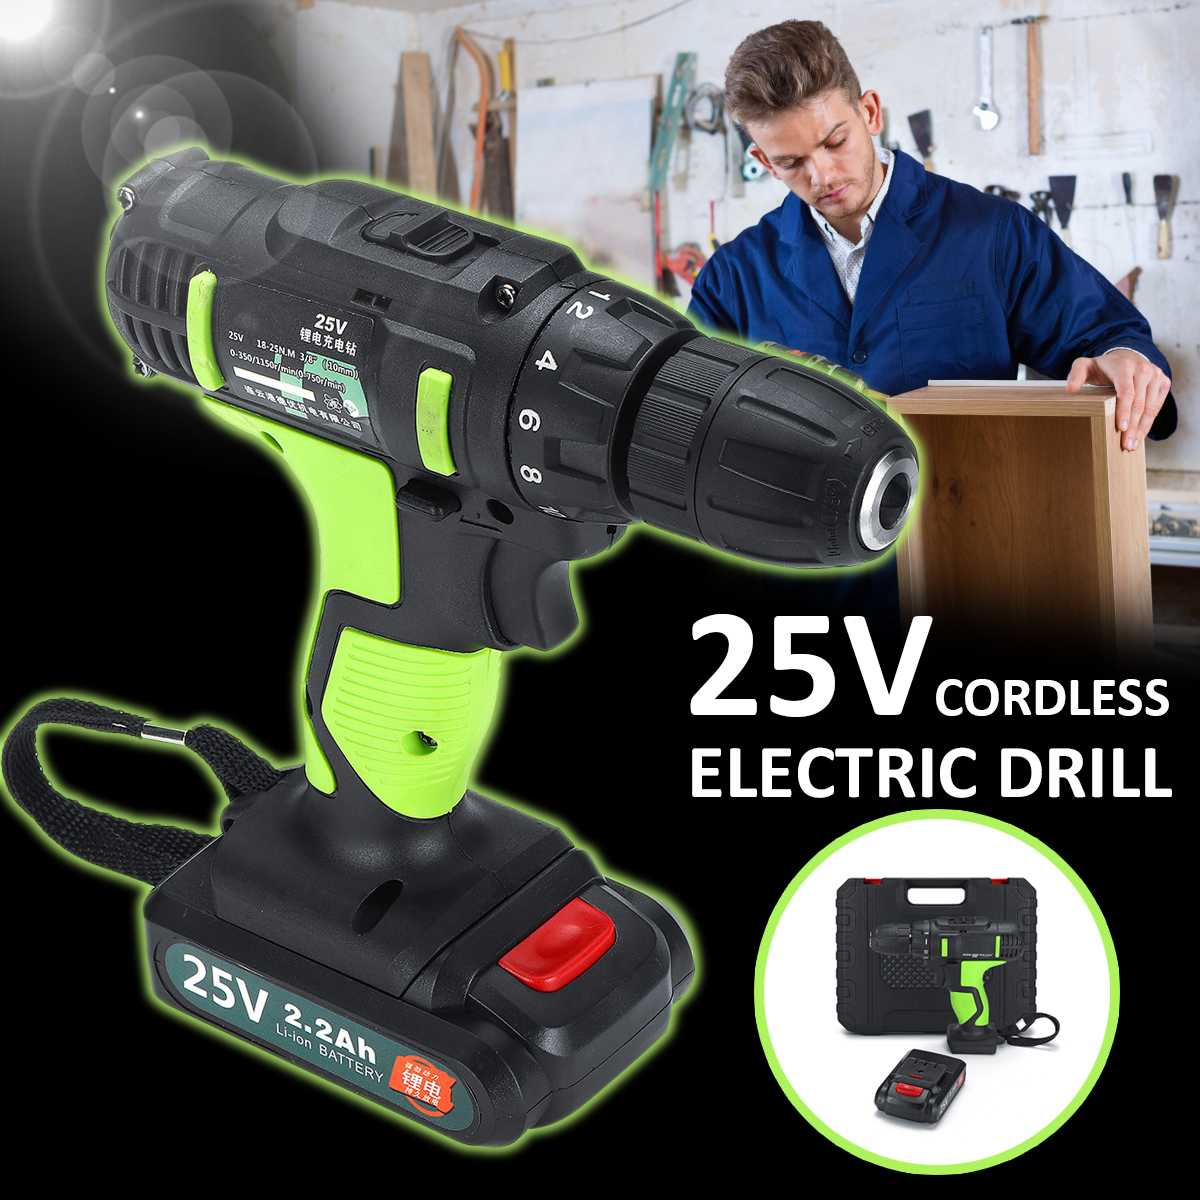 25V Double Speed Electric Screwdriver Li-ion Battery Multi-function Drill Rechargeable Cordless Electric Drill 220V Power Tools 12v 1300rpm electric screwdriver li battery rechargeable multi function 2 speed cordless electric drill power tools box